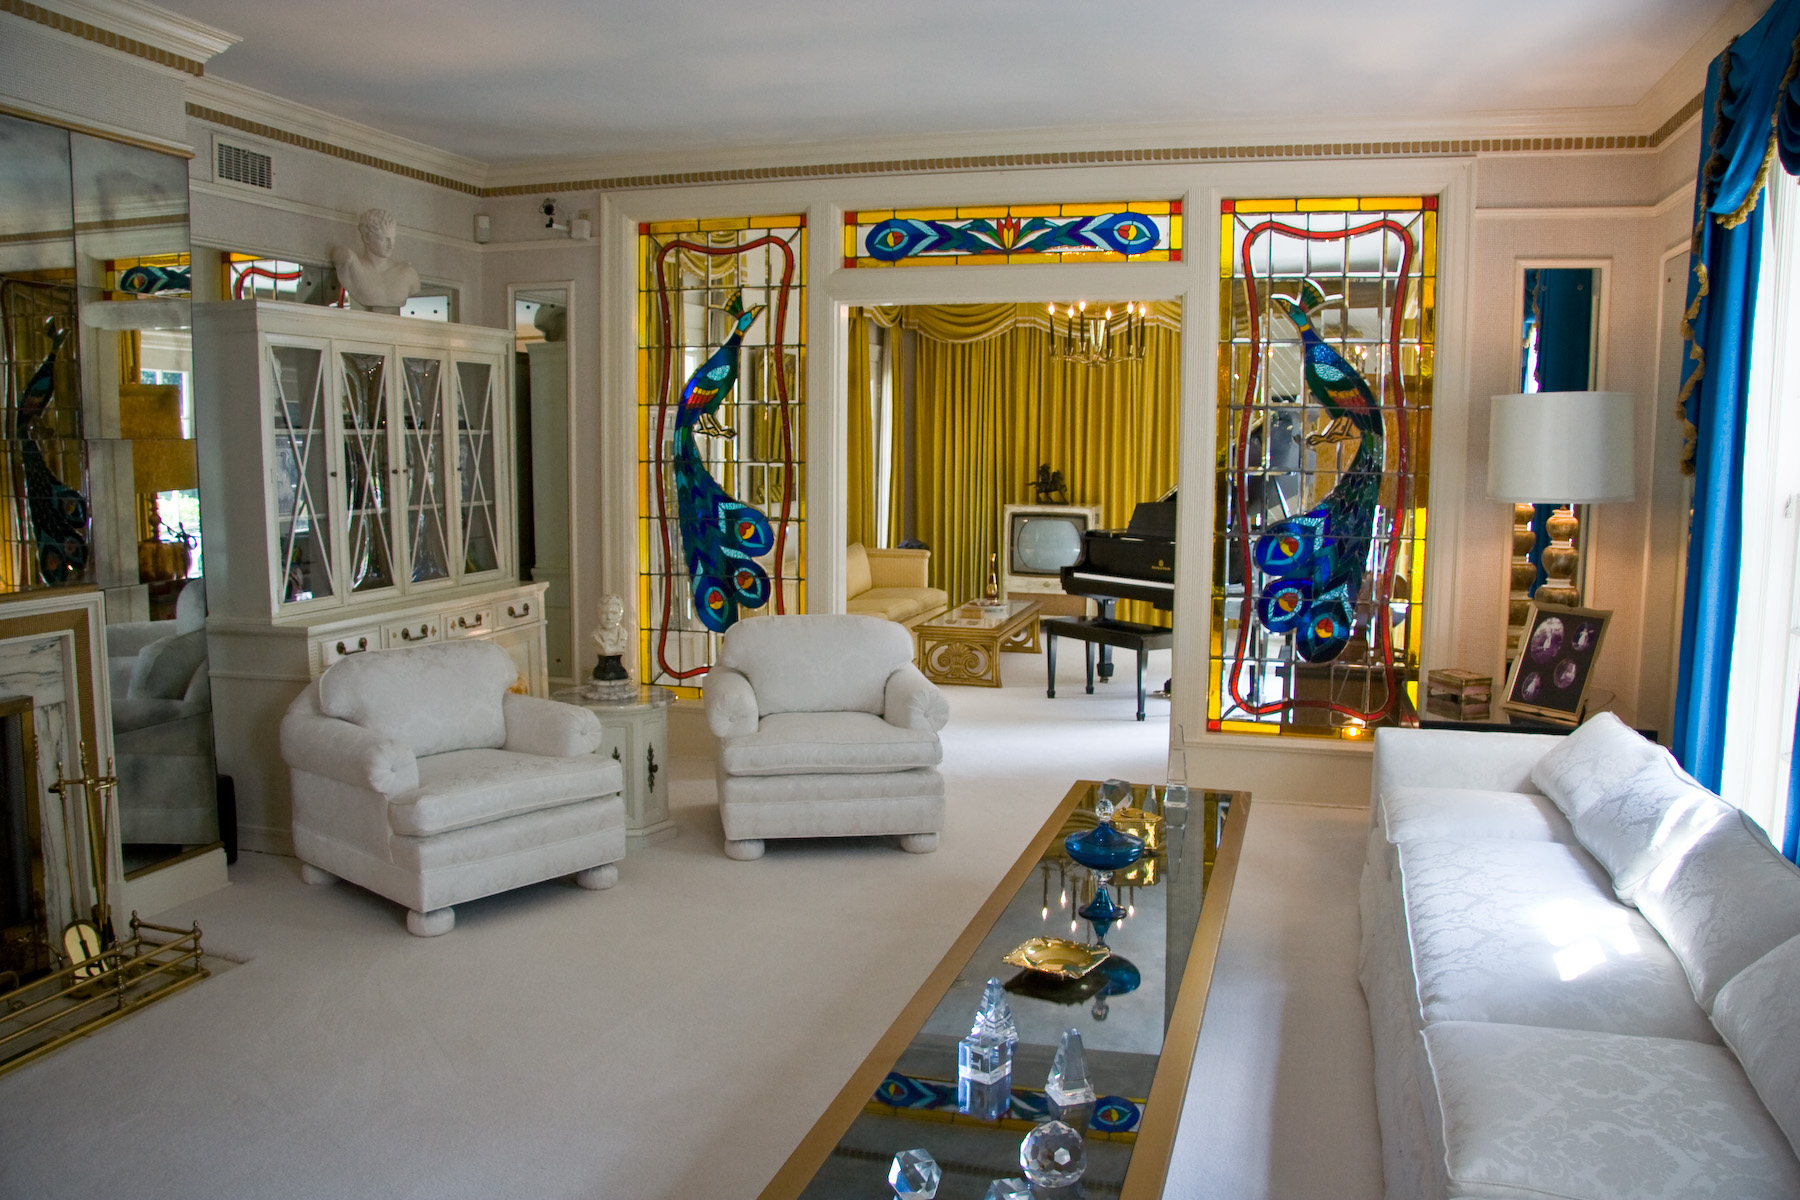 File:Graceland living room 1.jpg - Wikipedia